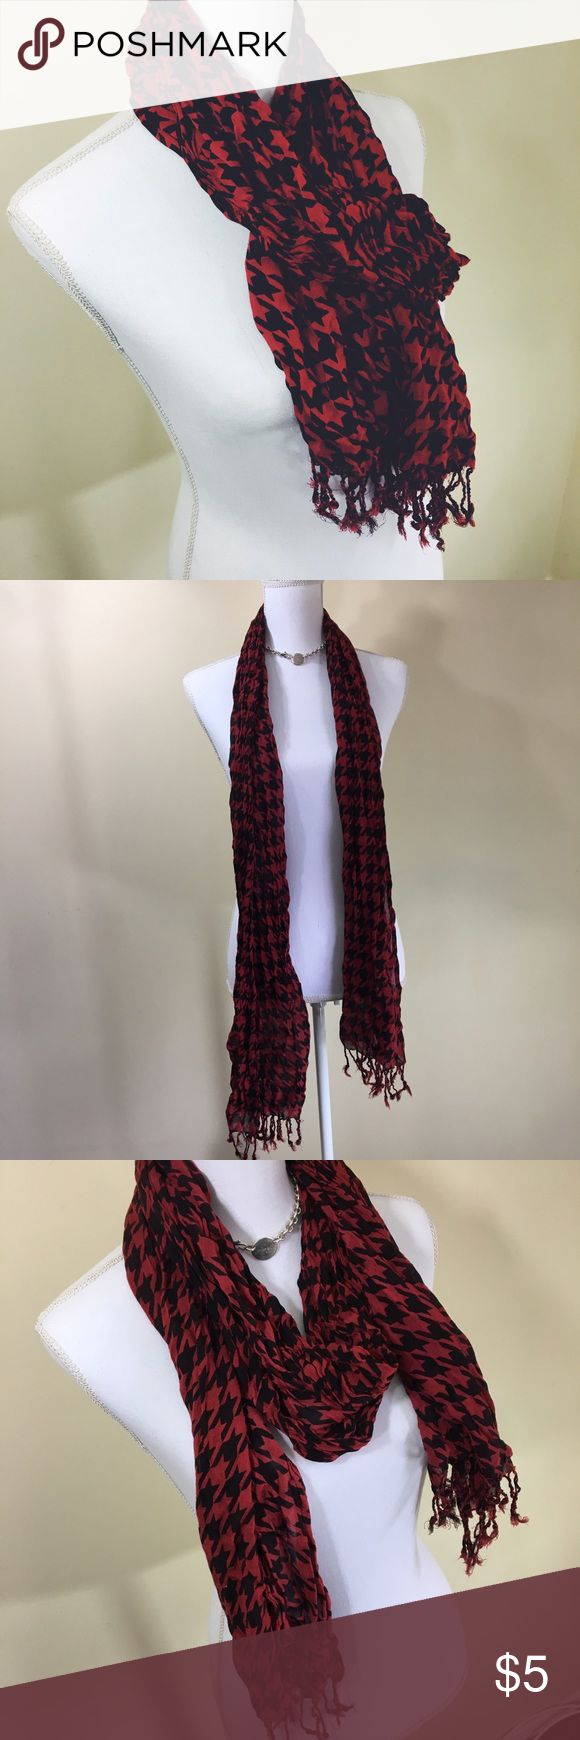 Red & Black Houndstooth Scarf Long red and black houndstooth designed scarf that's very lightweight, perfect for fall! Accessories Scarves & Wraps